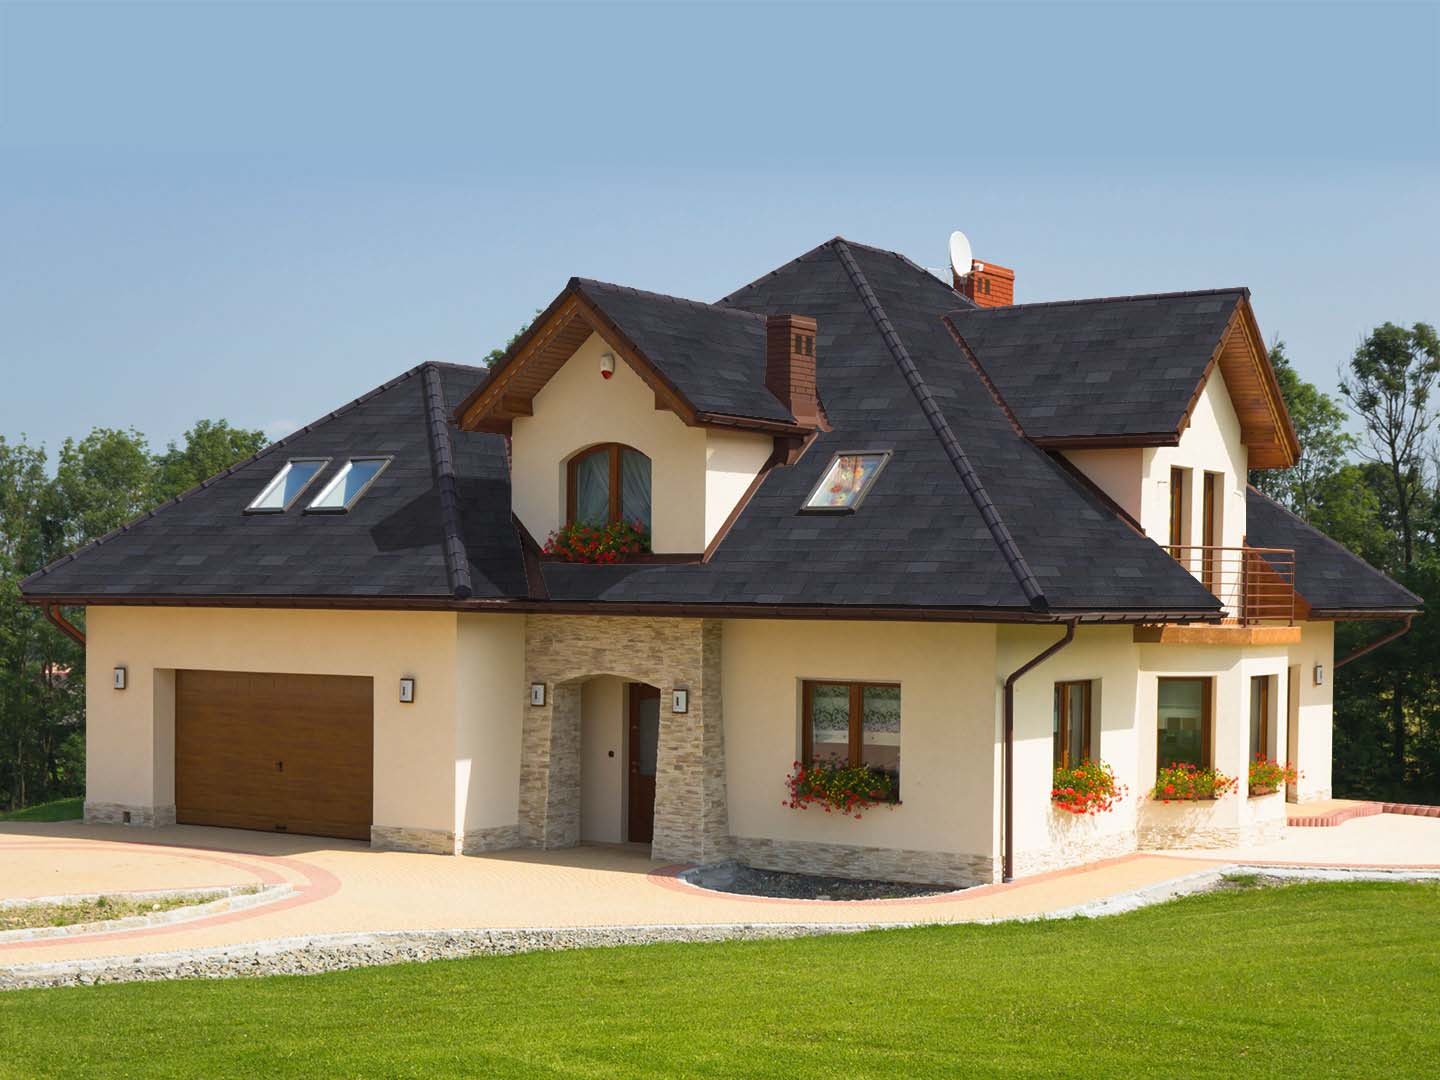 Glassmaster shingles atlas roofing for House and roof colors